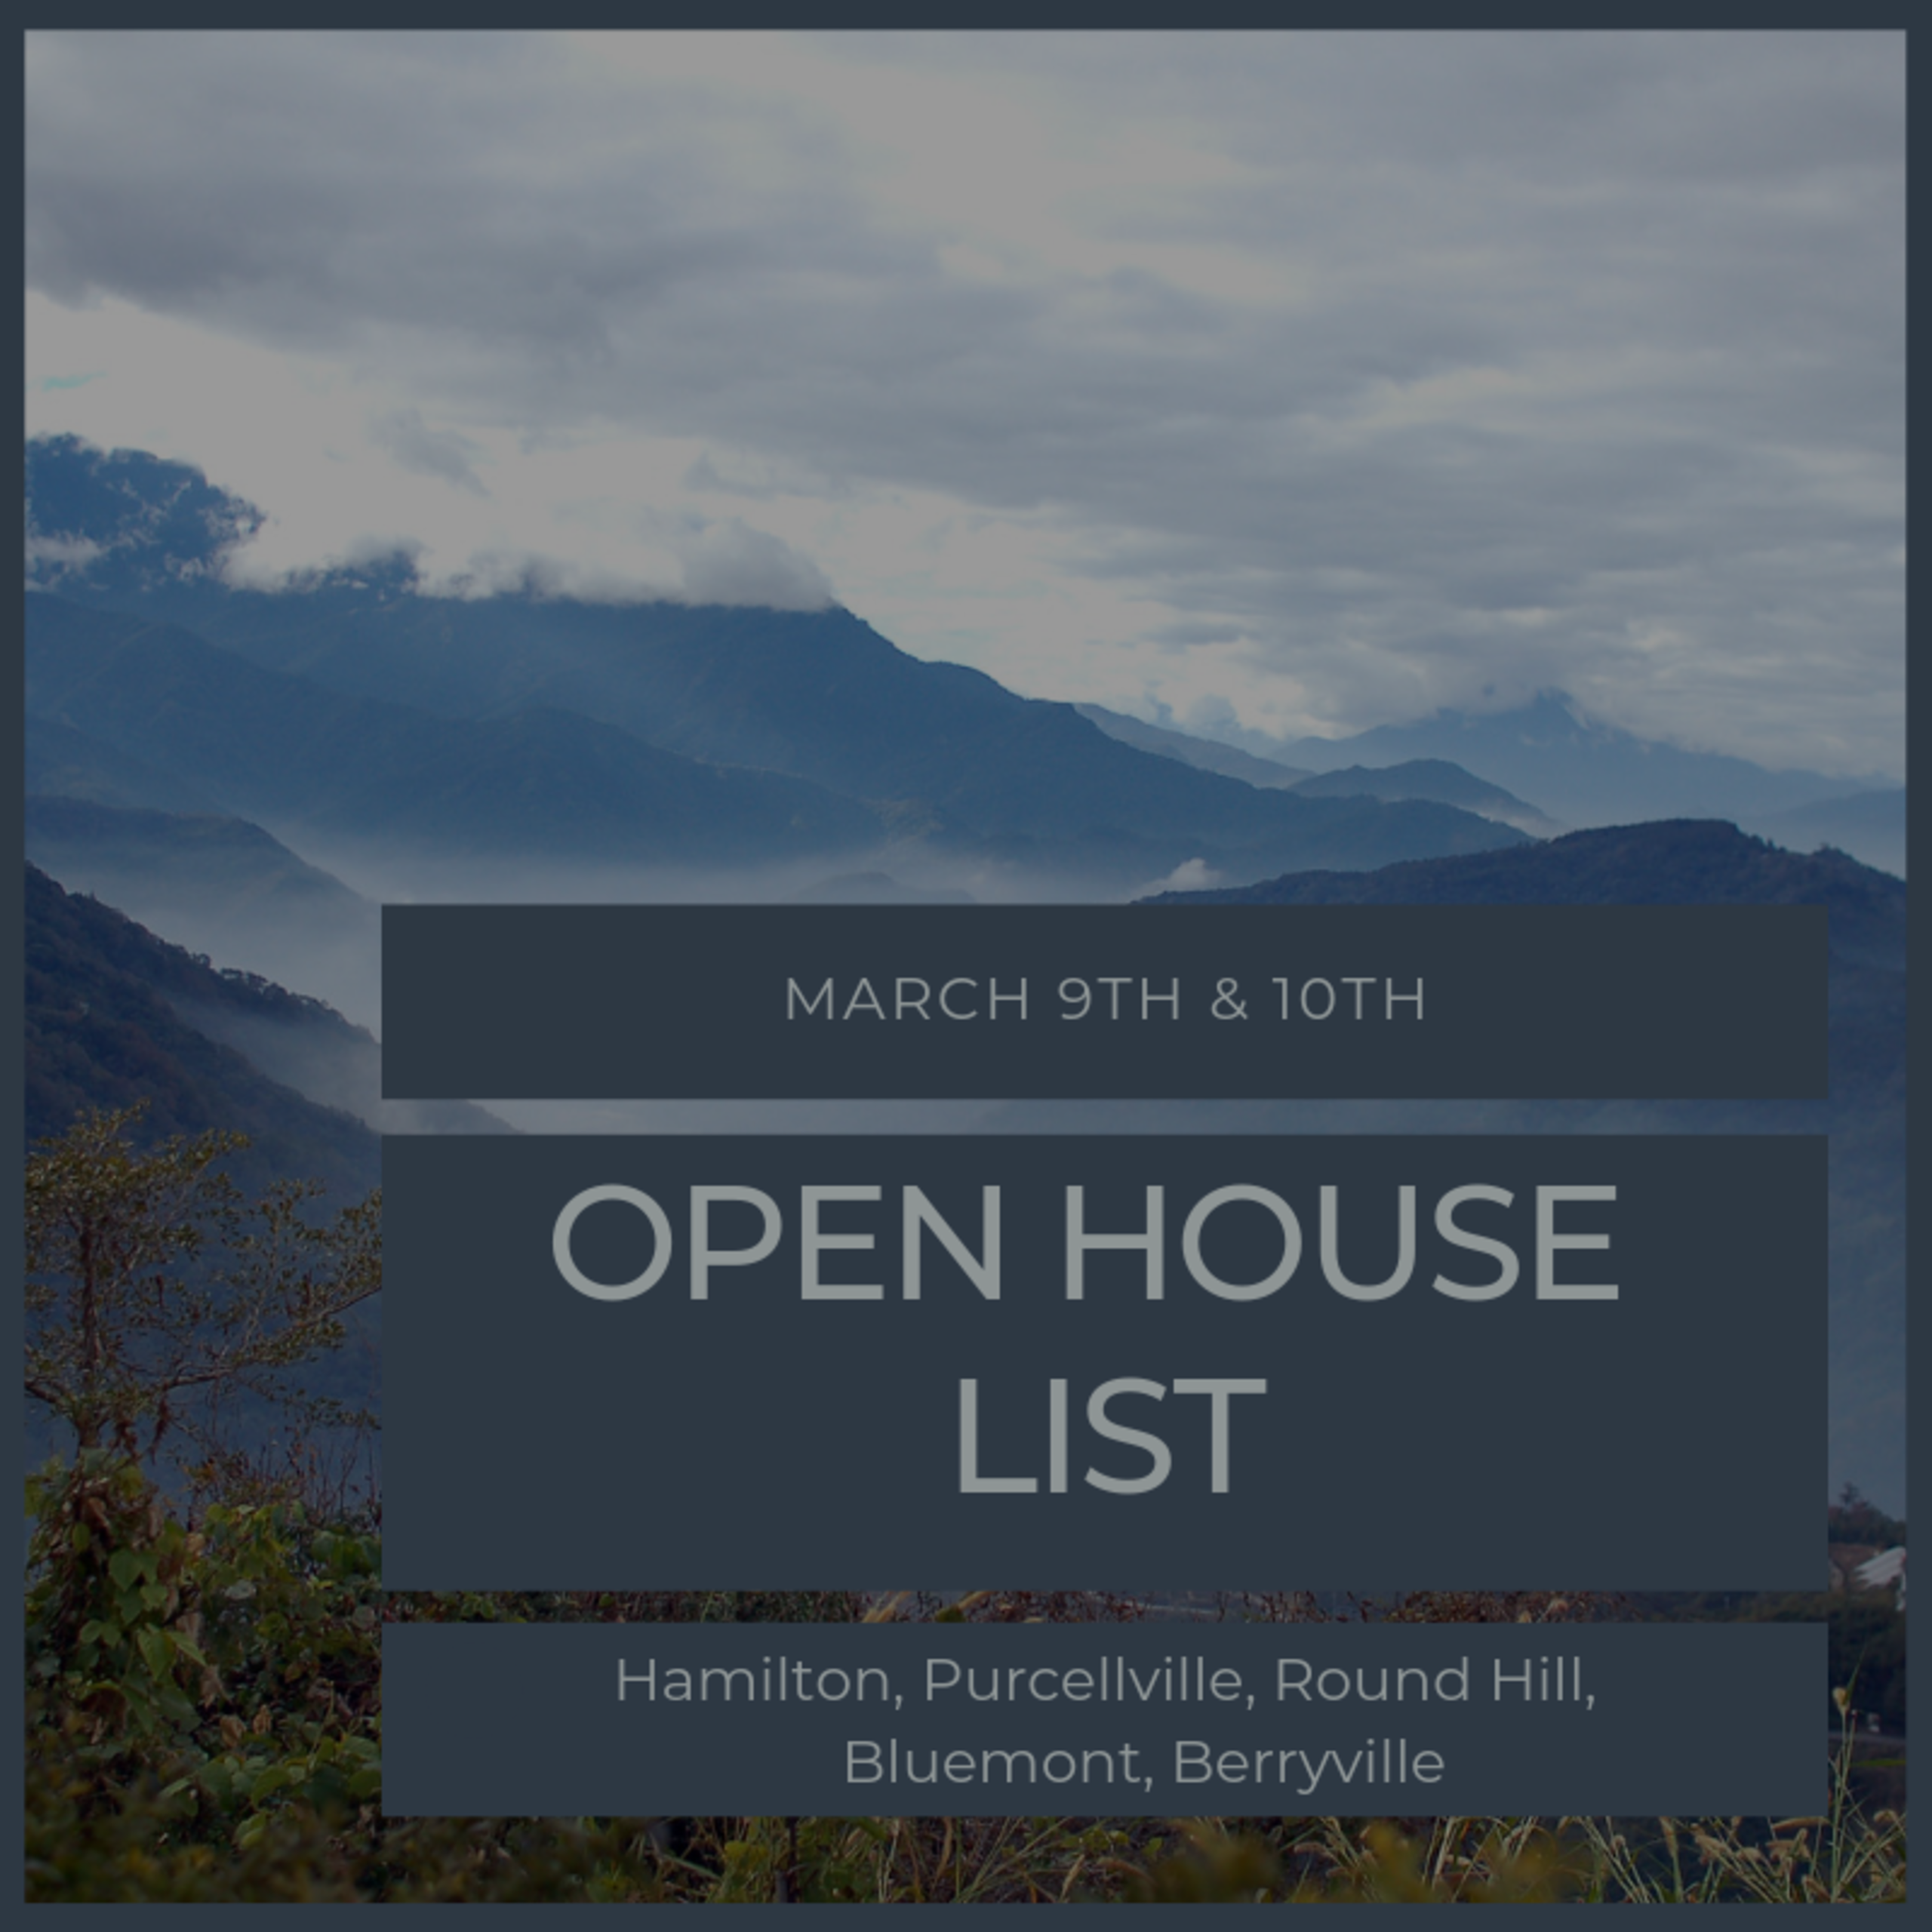 Open House List 3/9/19 – 3/10/19